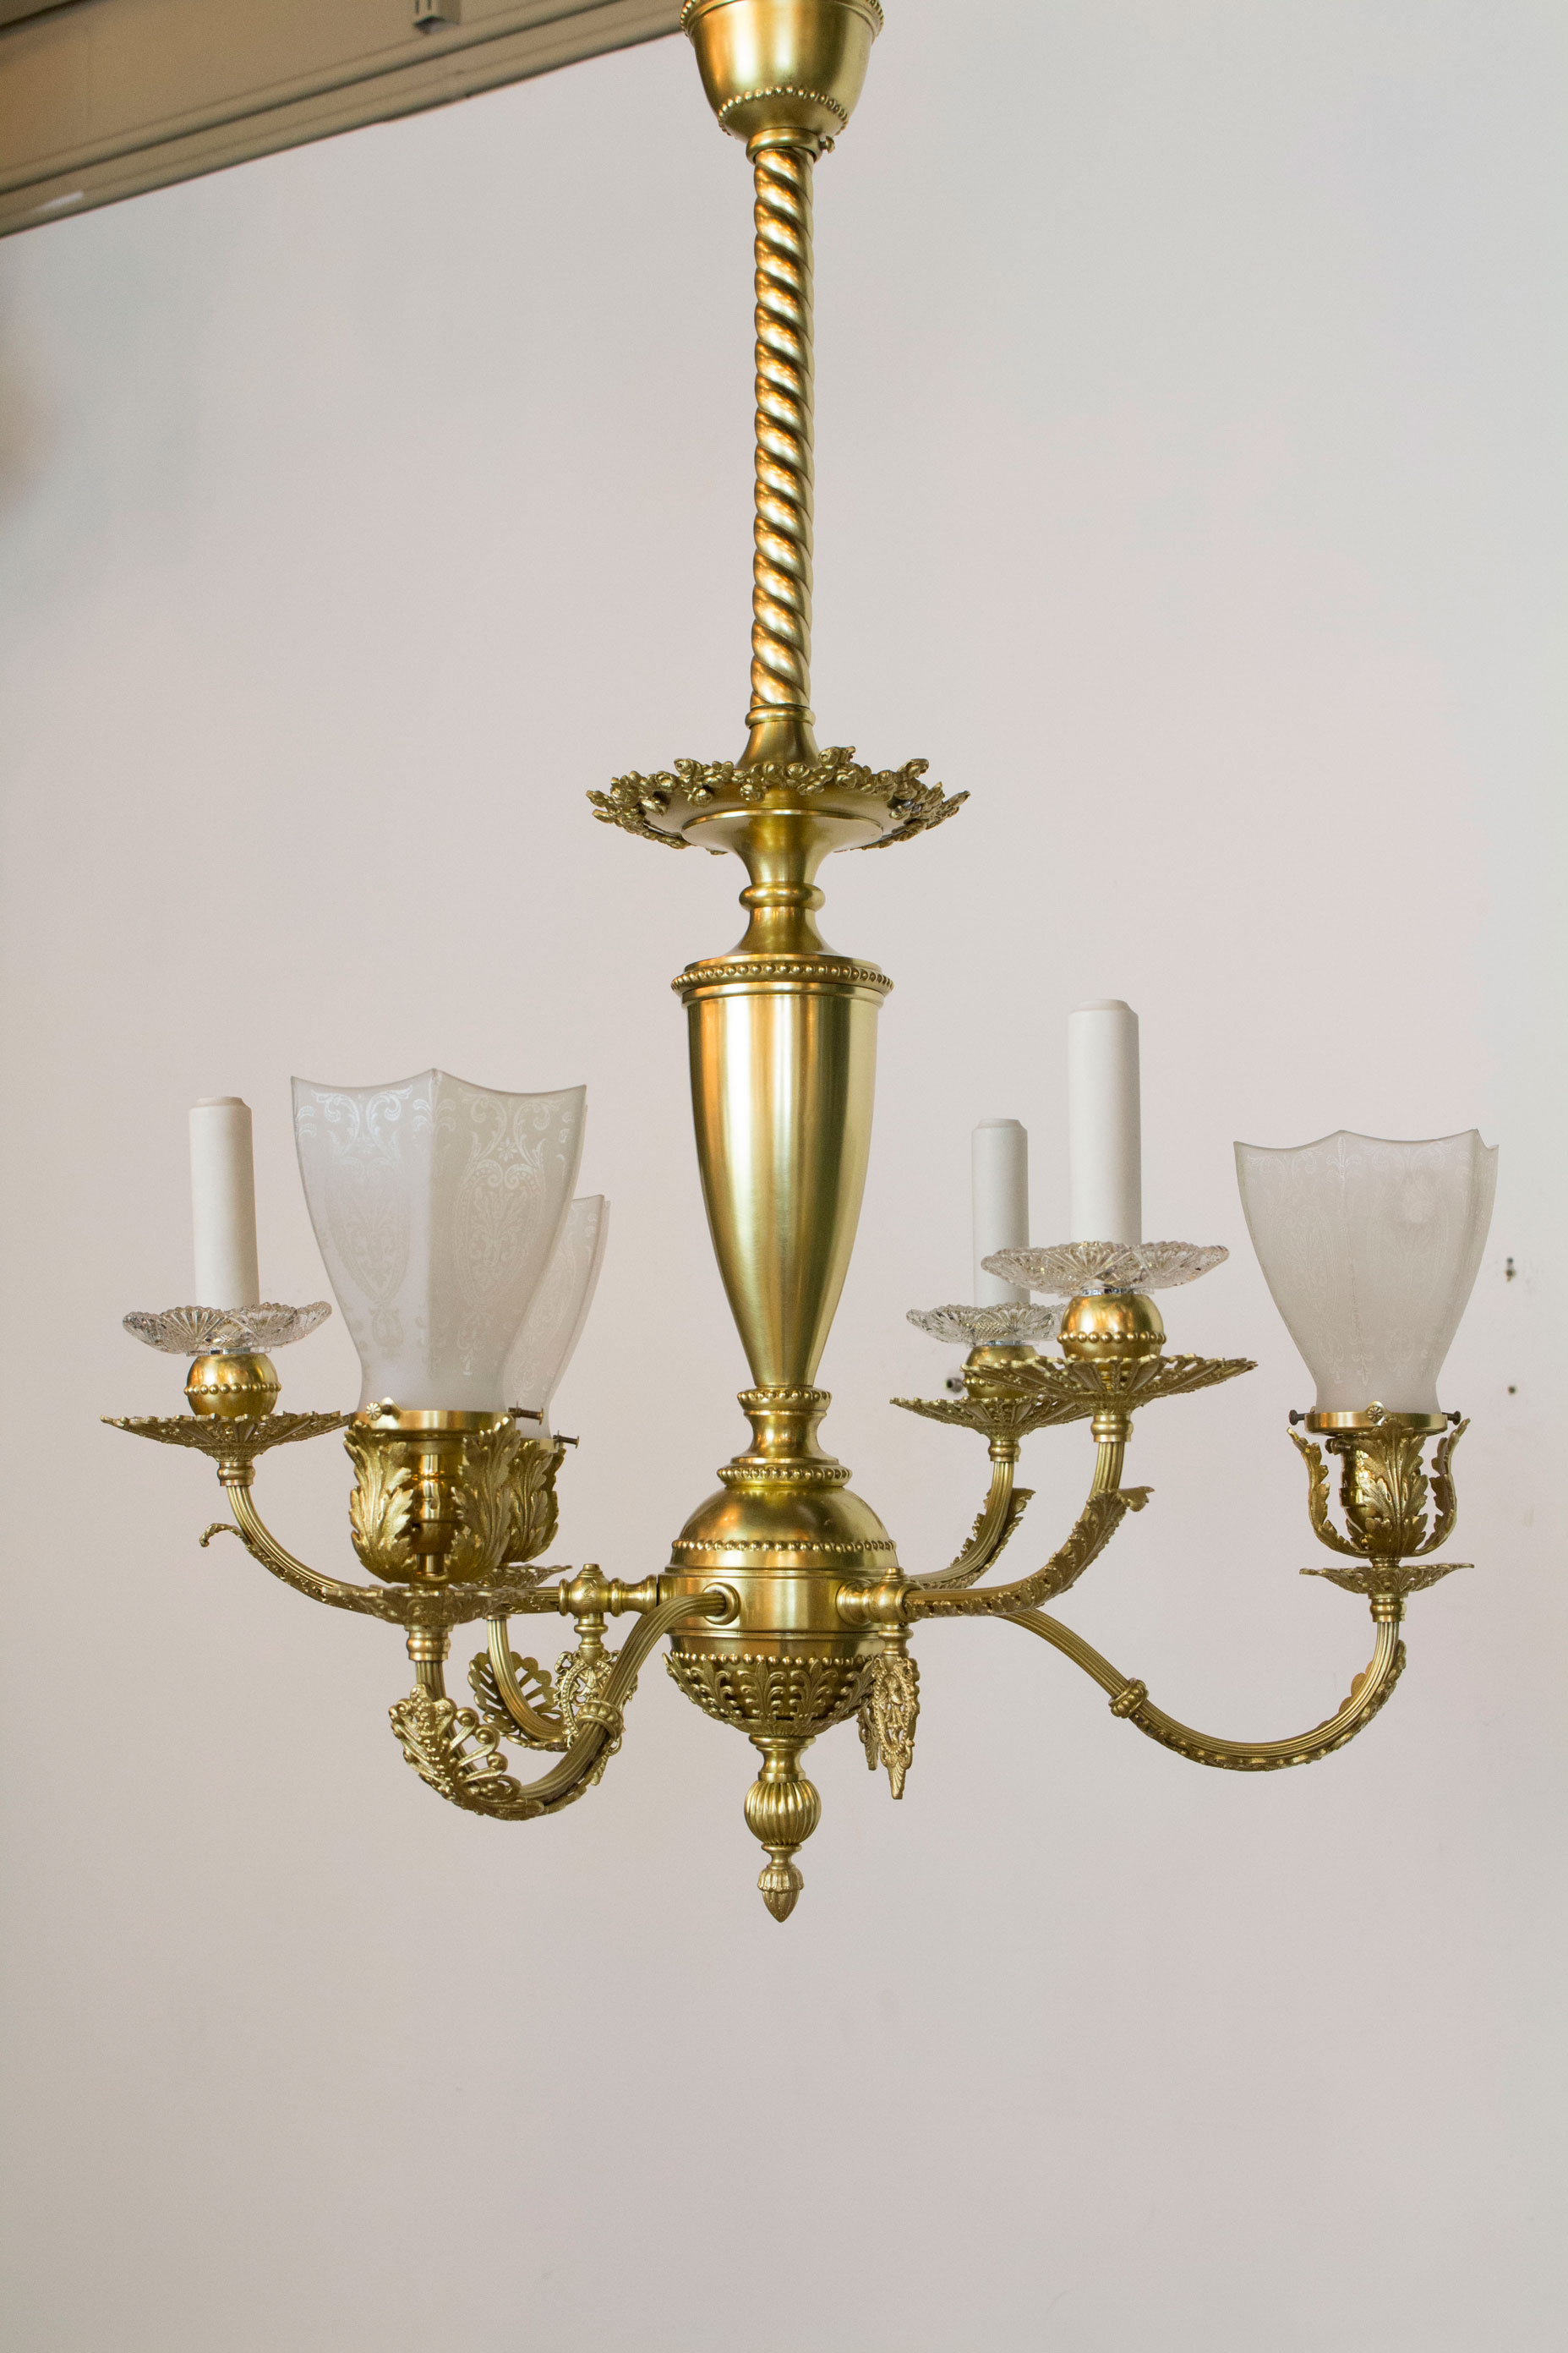 Delicate Gas And Electric Fixture With Original Glass